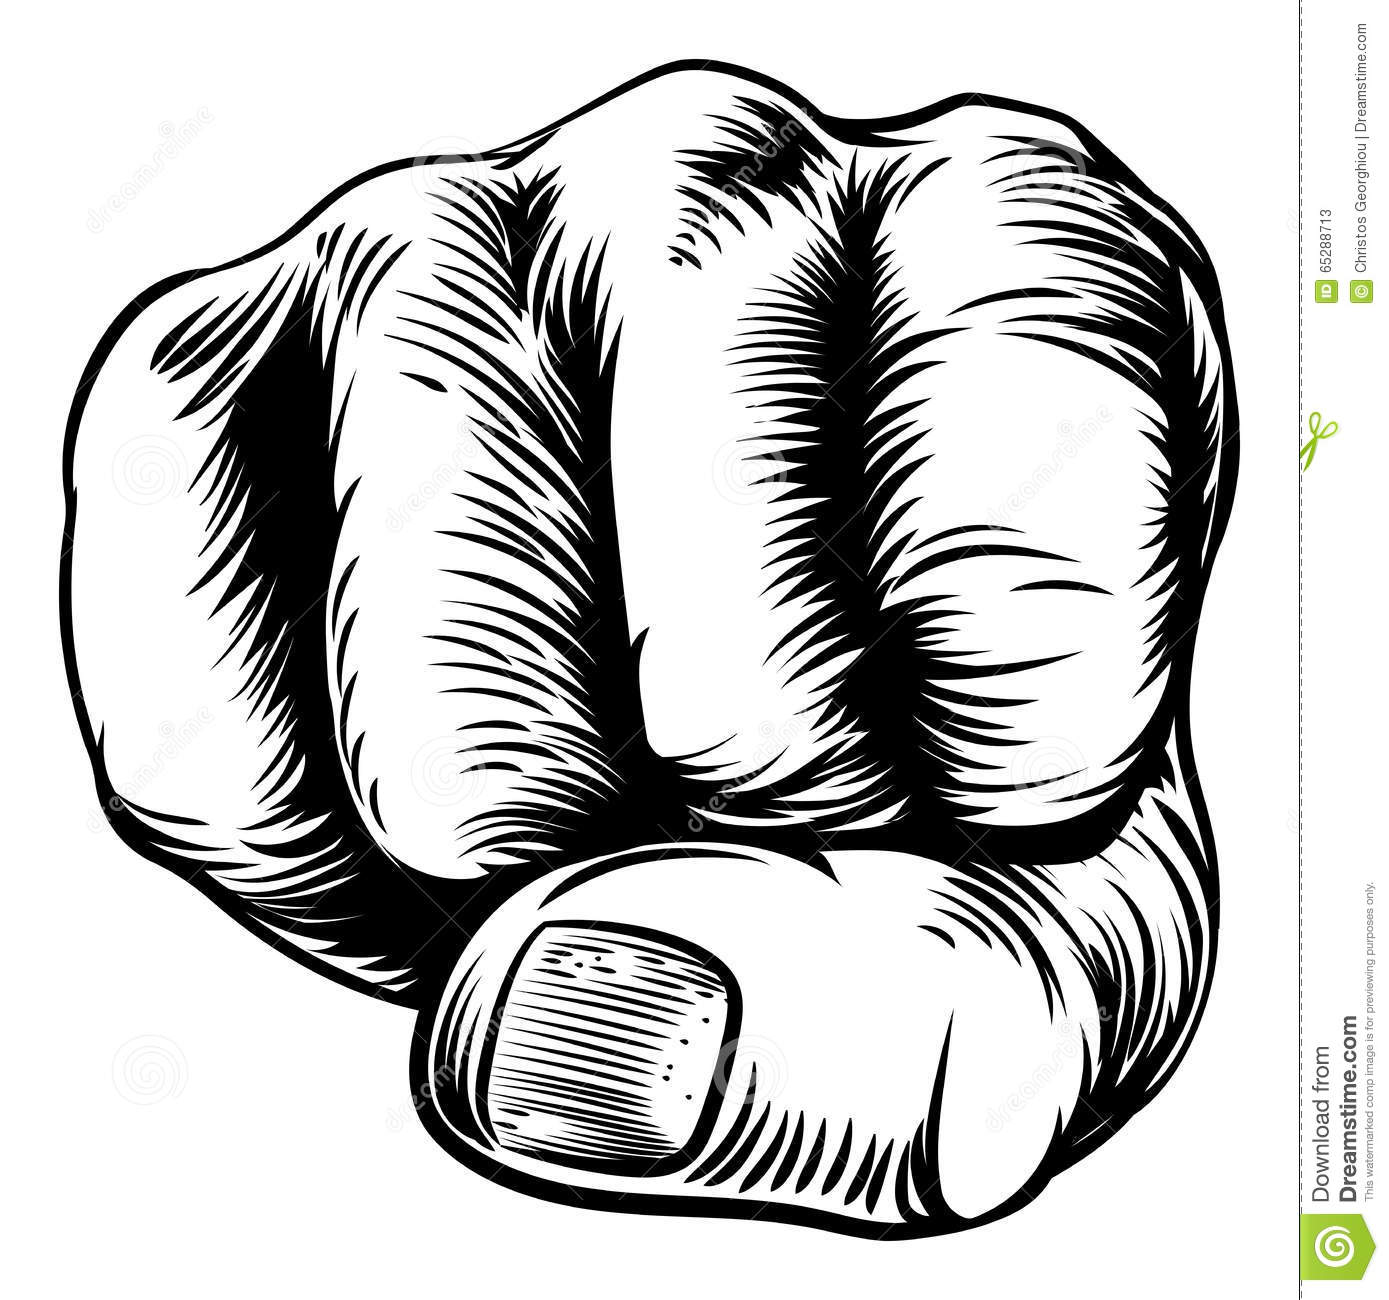 Woodcut Etching Fist Hand Stock Vector Illustration Of